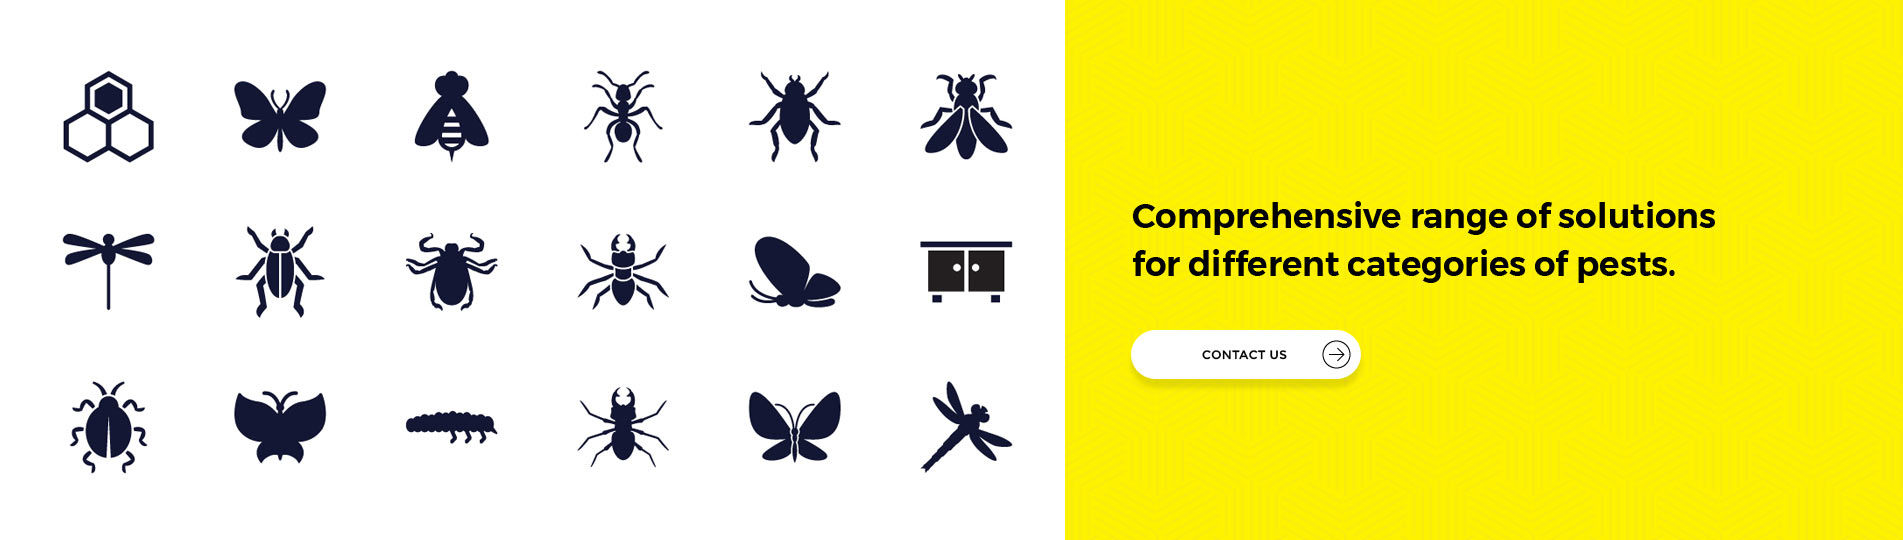 Hire Advanced Pest Control Company in India